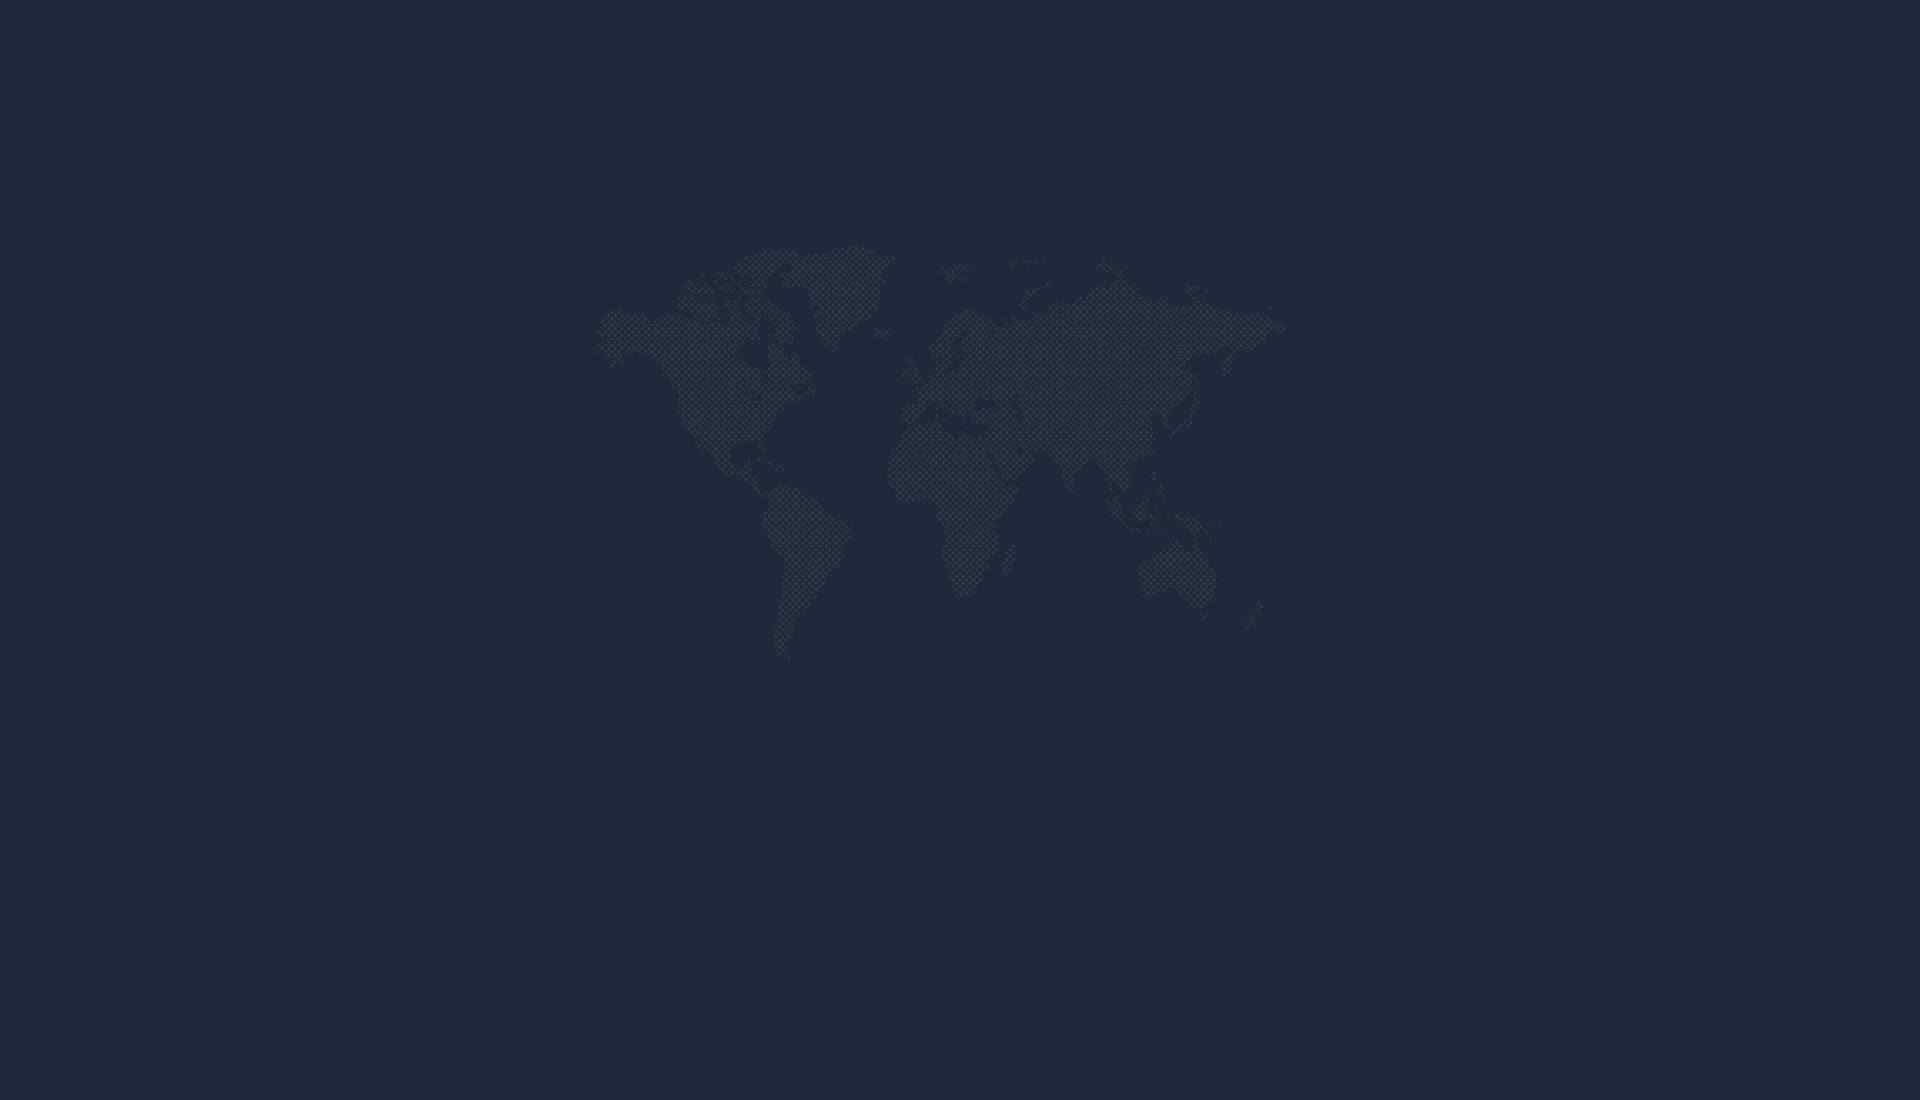 footer_background_02